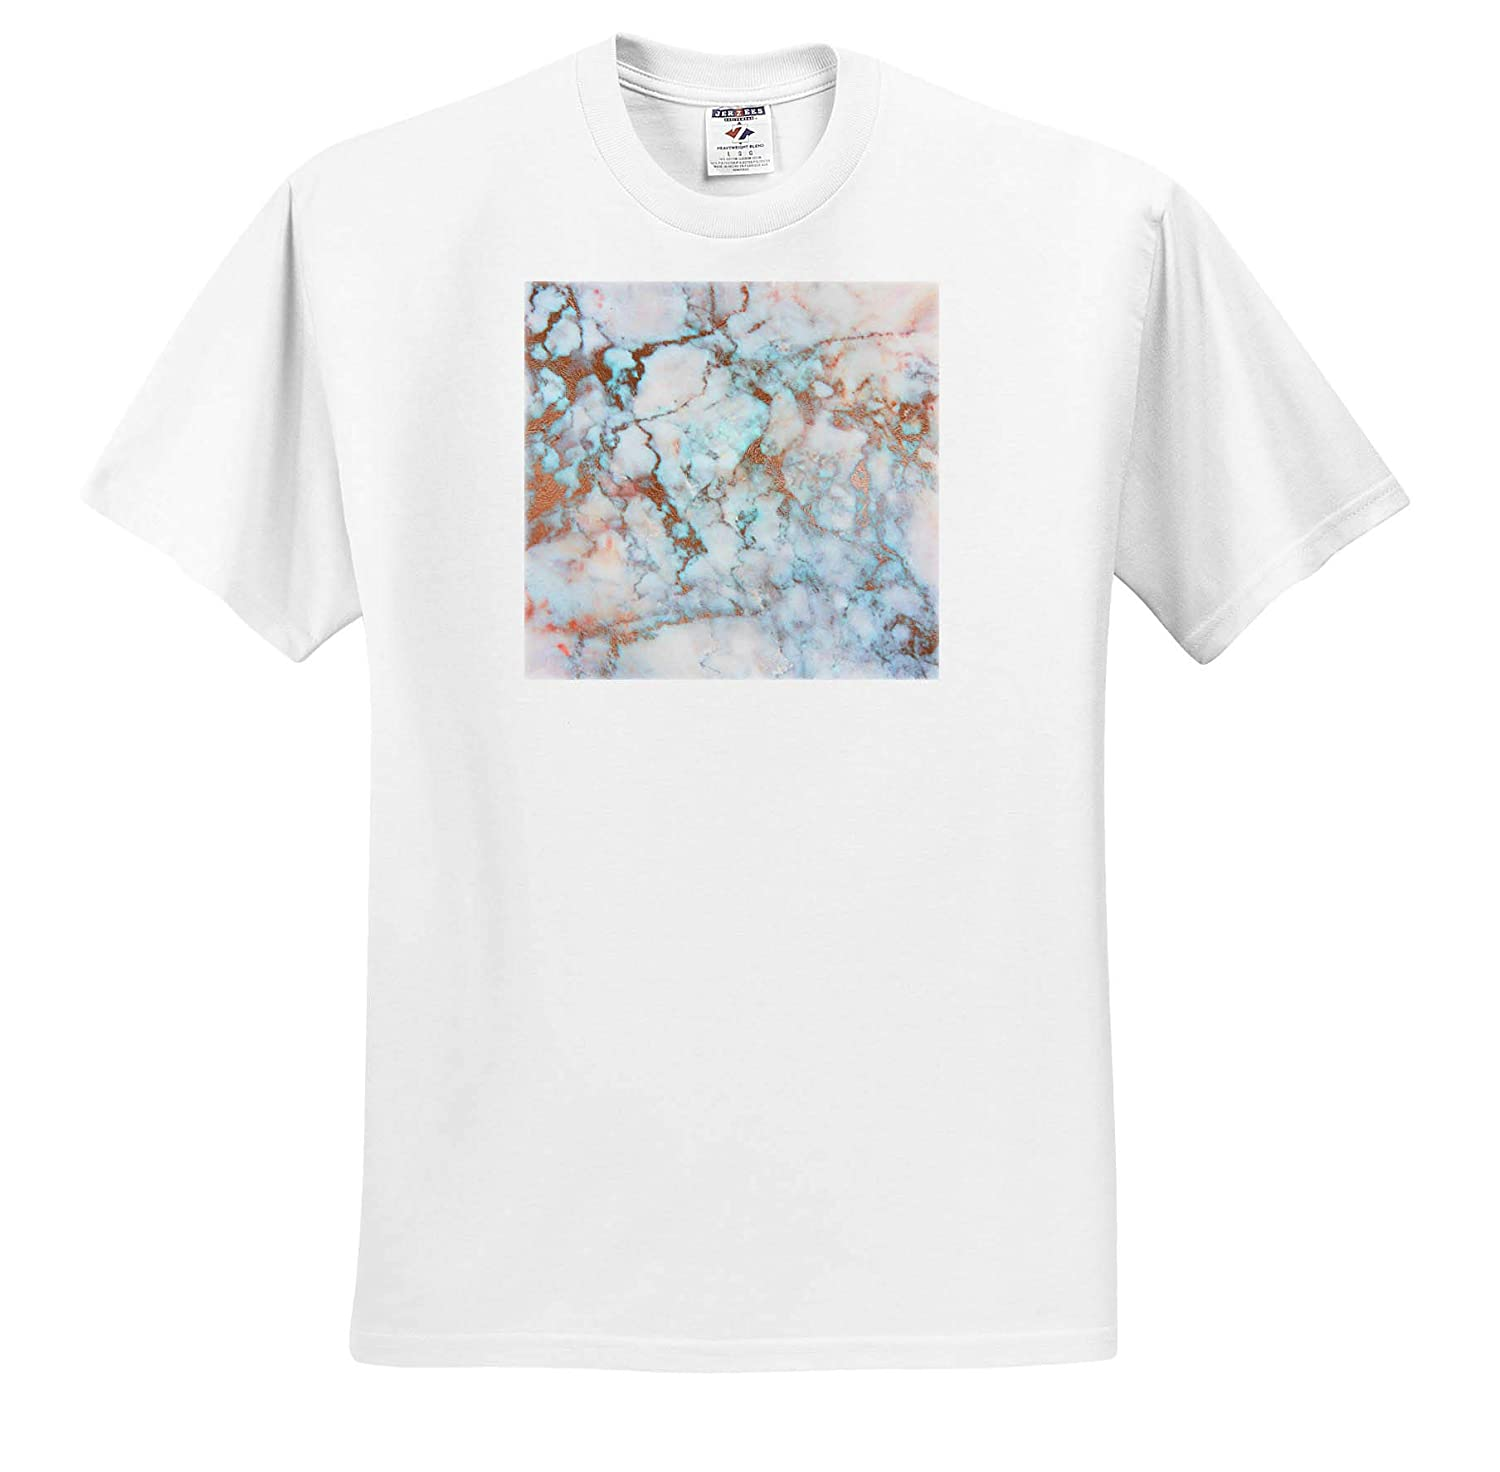 3dRose Anne Marie Baugh Textures ts/_316250 Adult T-Shirt XL Contemporary Image of Copper in Image of Marble Design